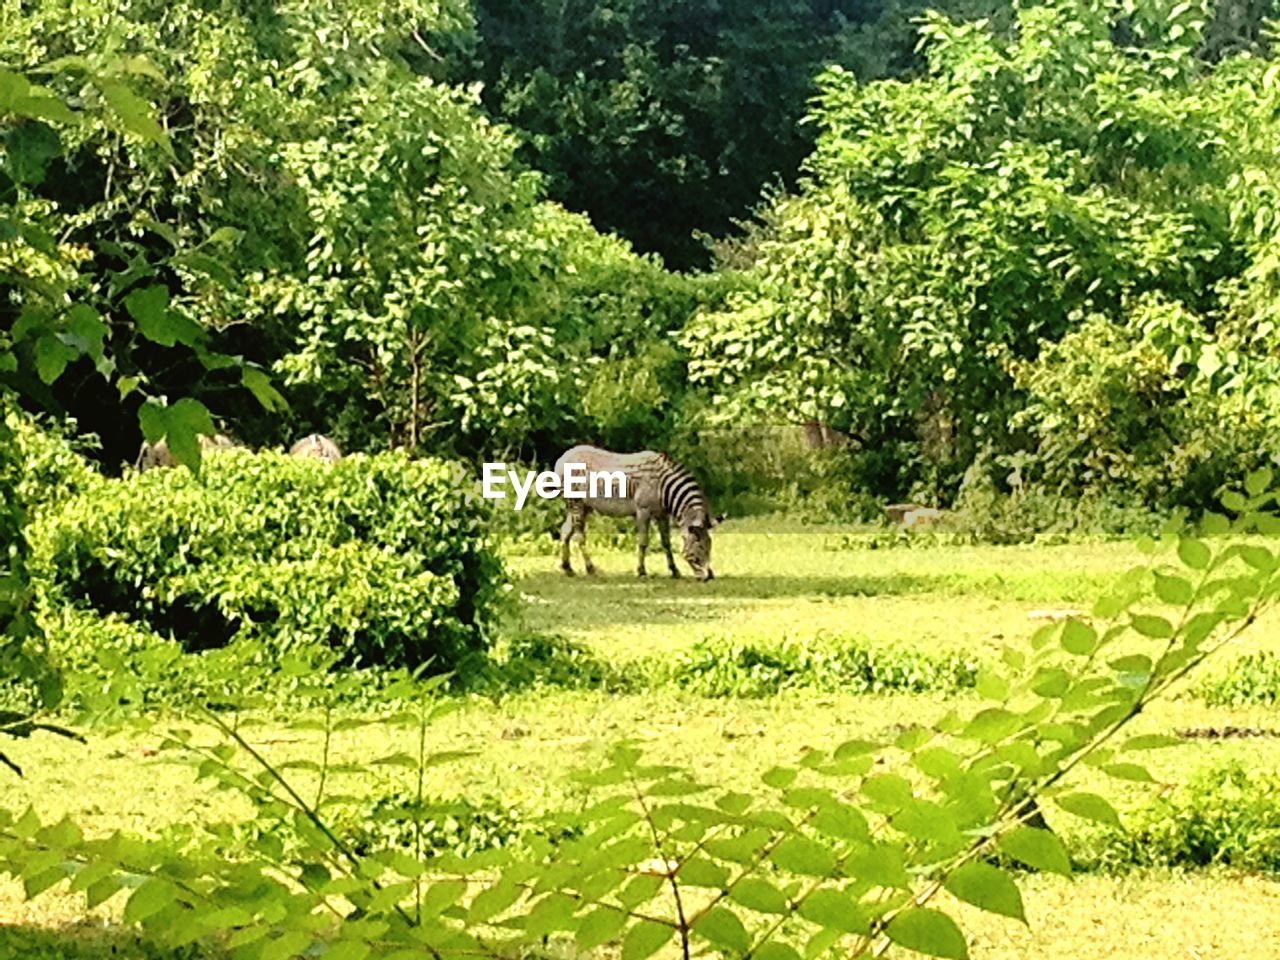 green color, animal themes, one animal, mammal, tree, grass, nature, plant, day, grazing, animals in the wild, no people, outdoors, growth, field, landscape, animal wildlife, leaf, full length, domestic animals, beauty in nature